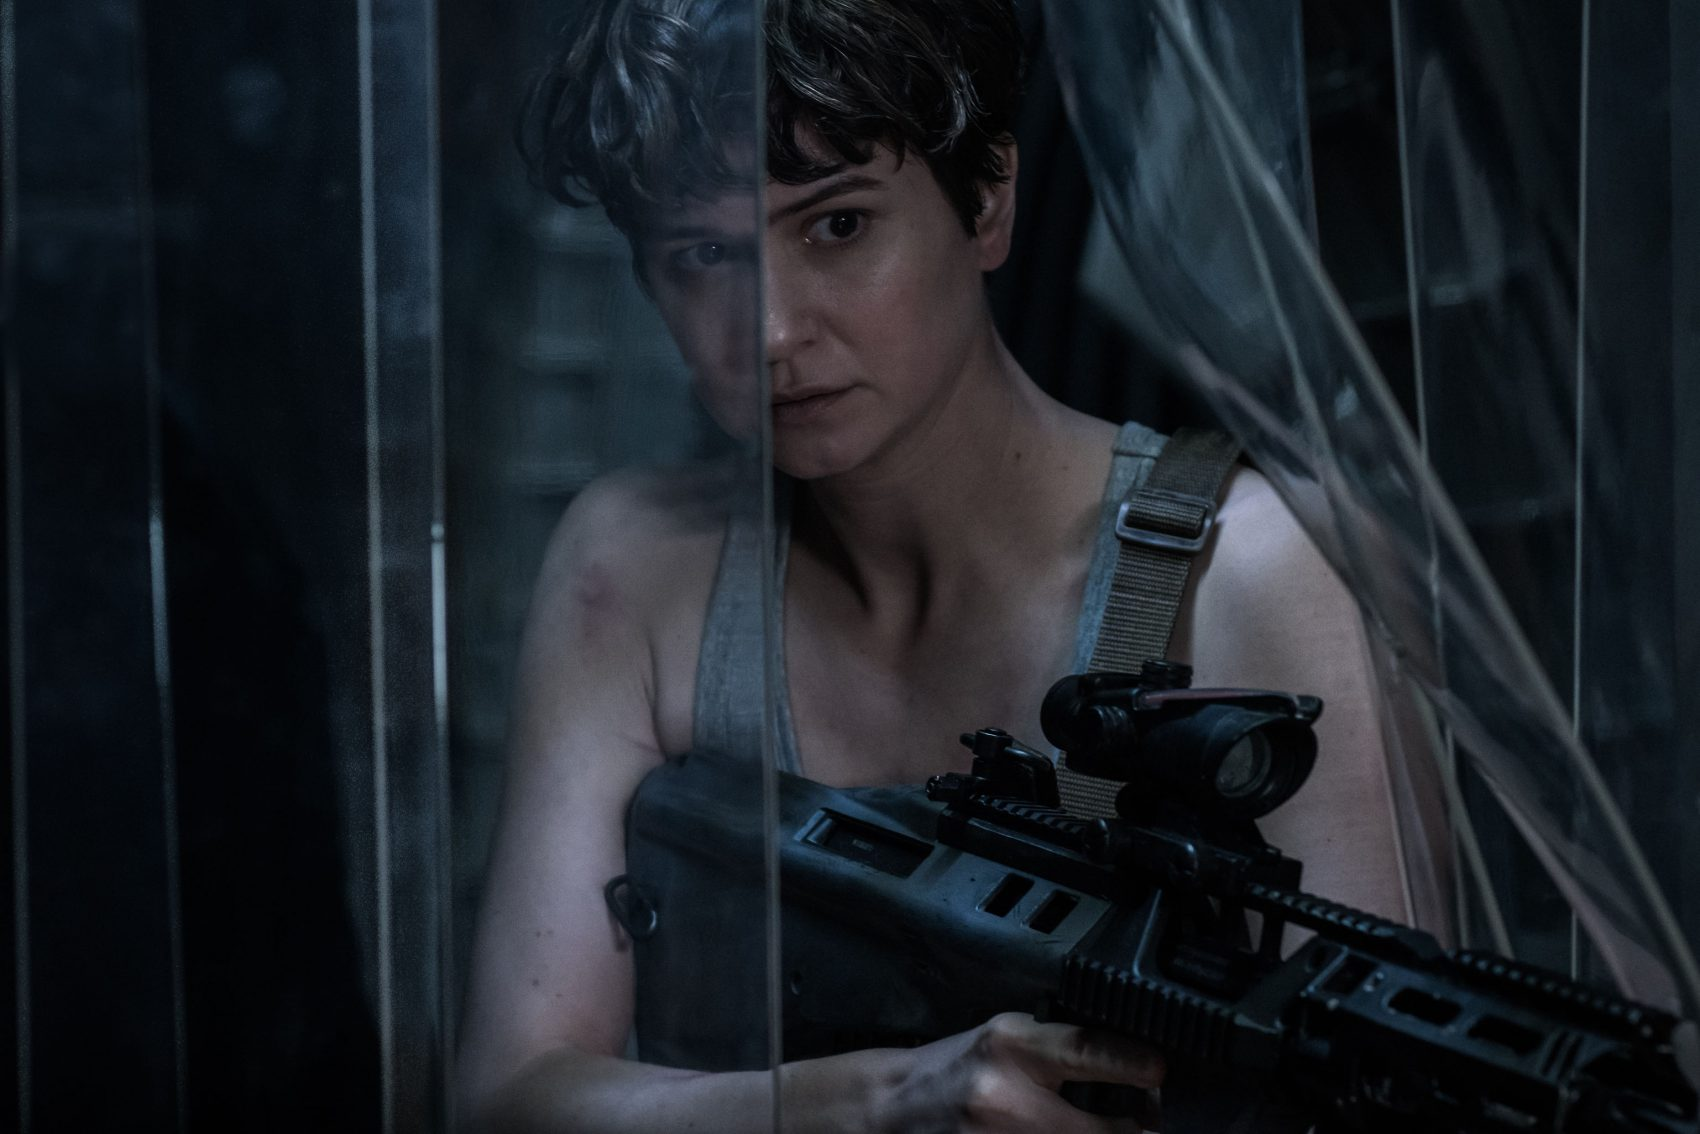 MOVIE: Alien Covenant brings franchise back